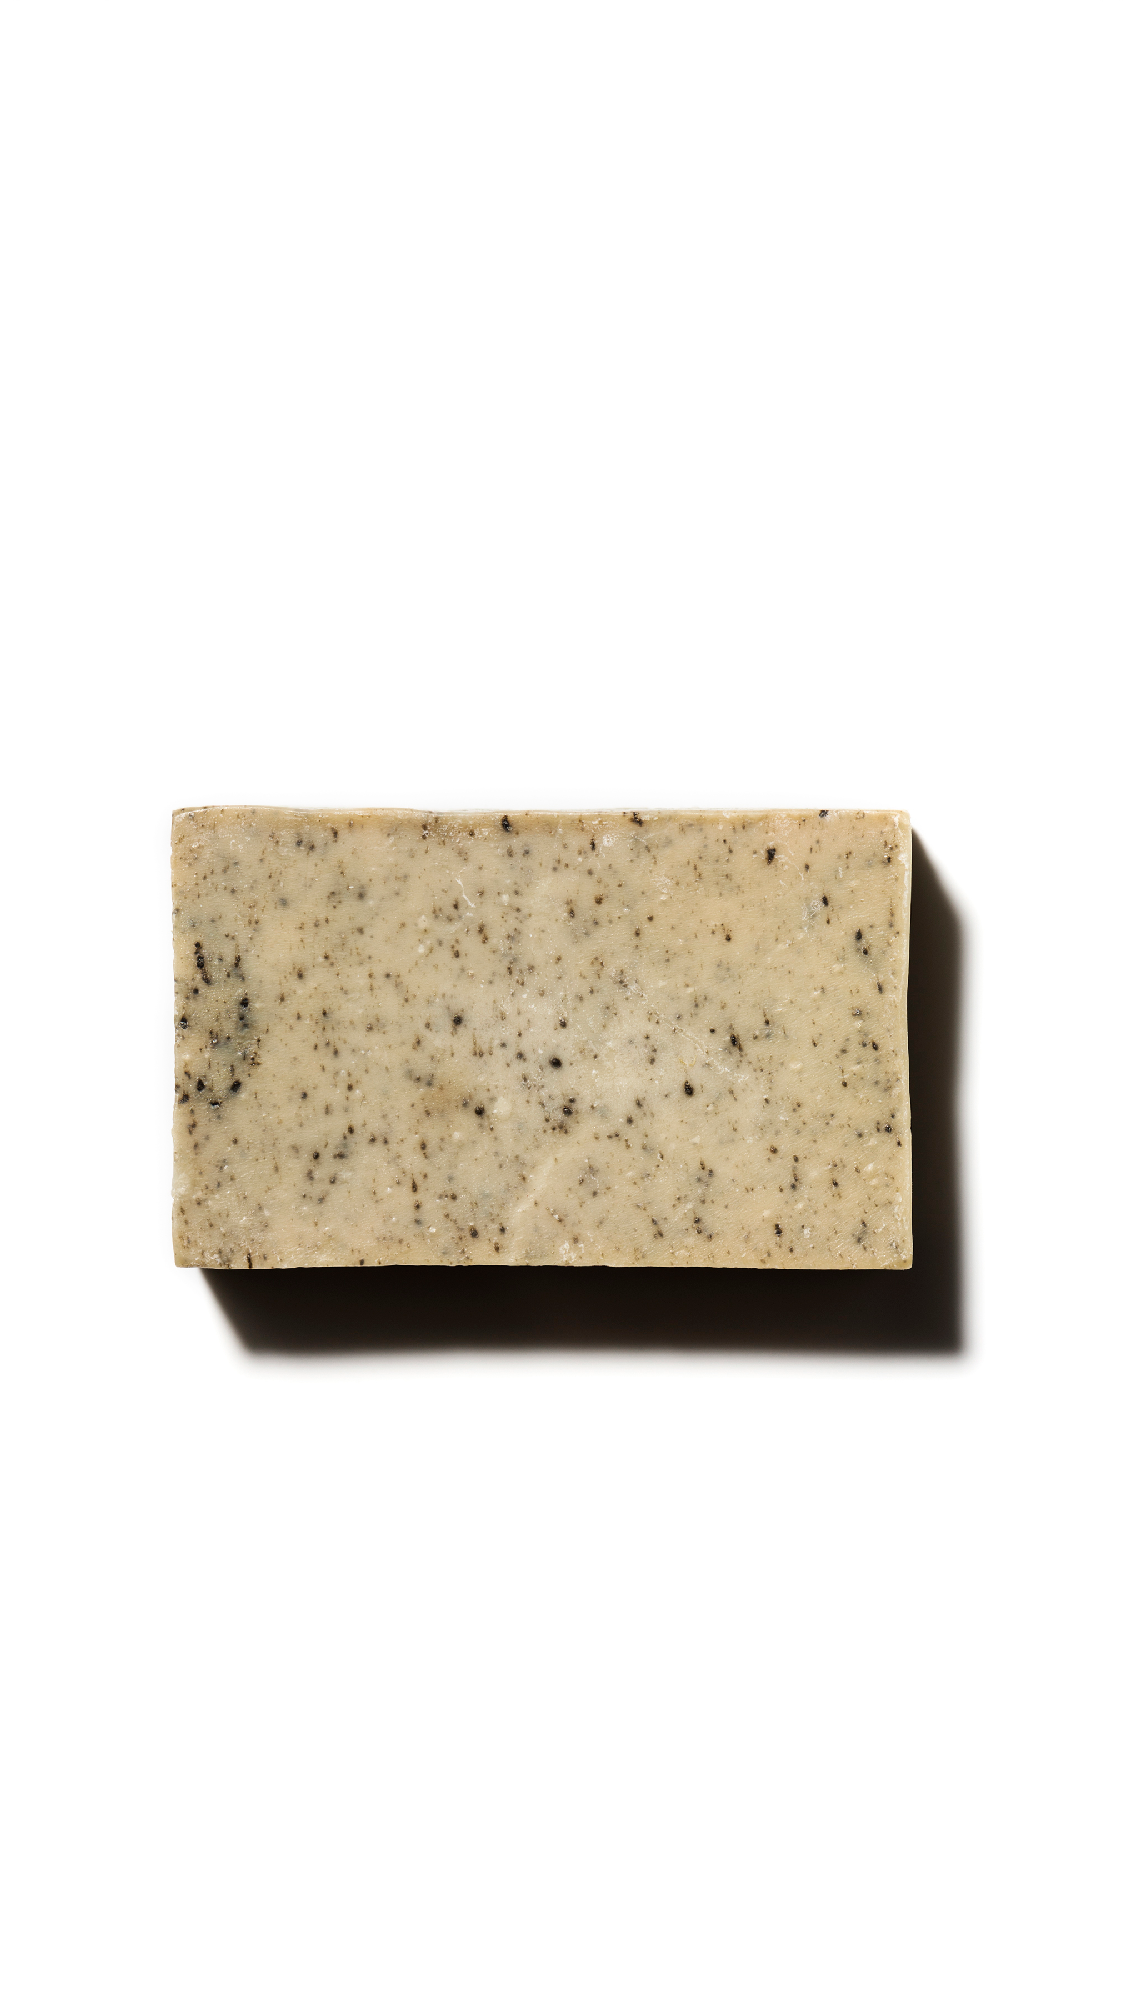 Dead Mud Sea Soap